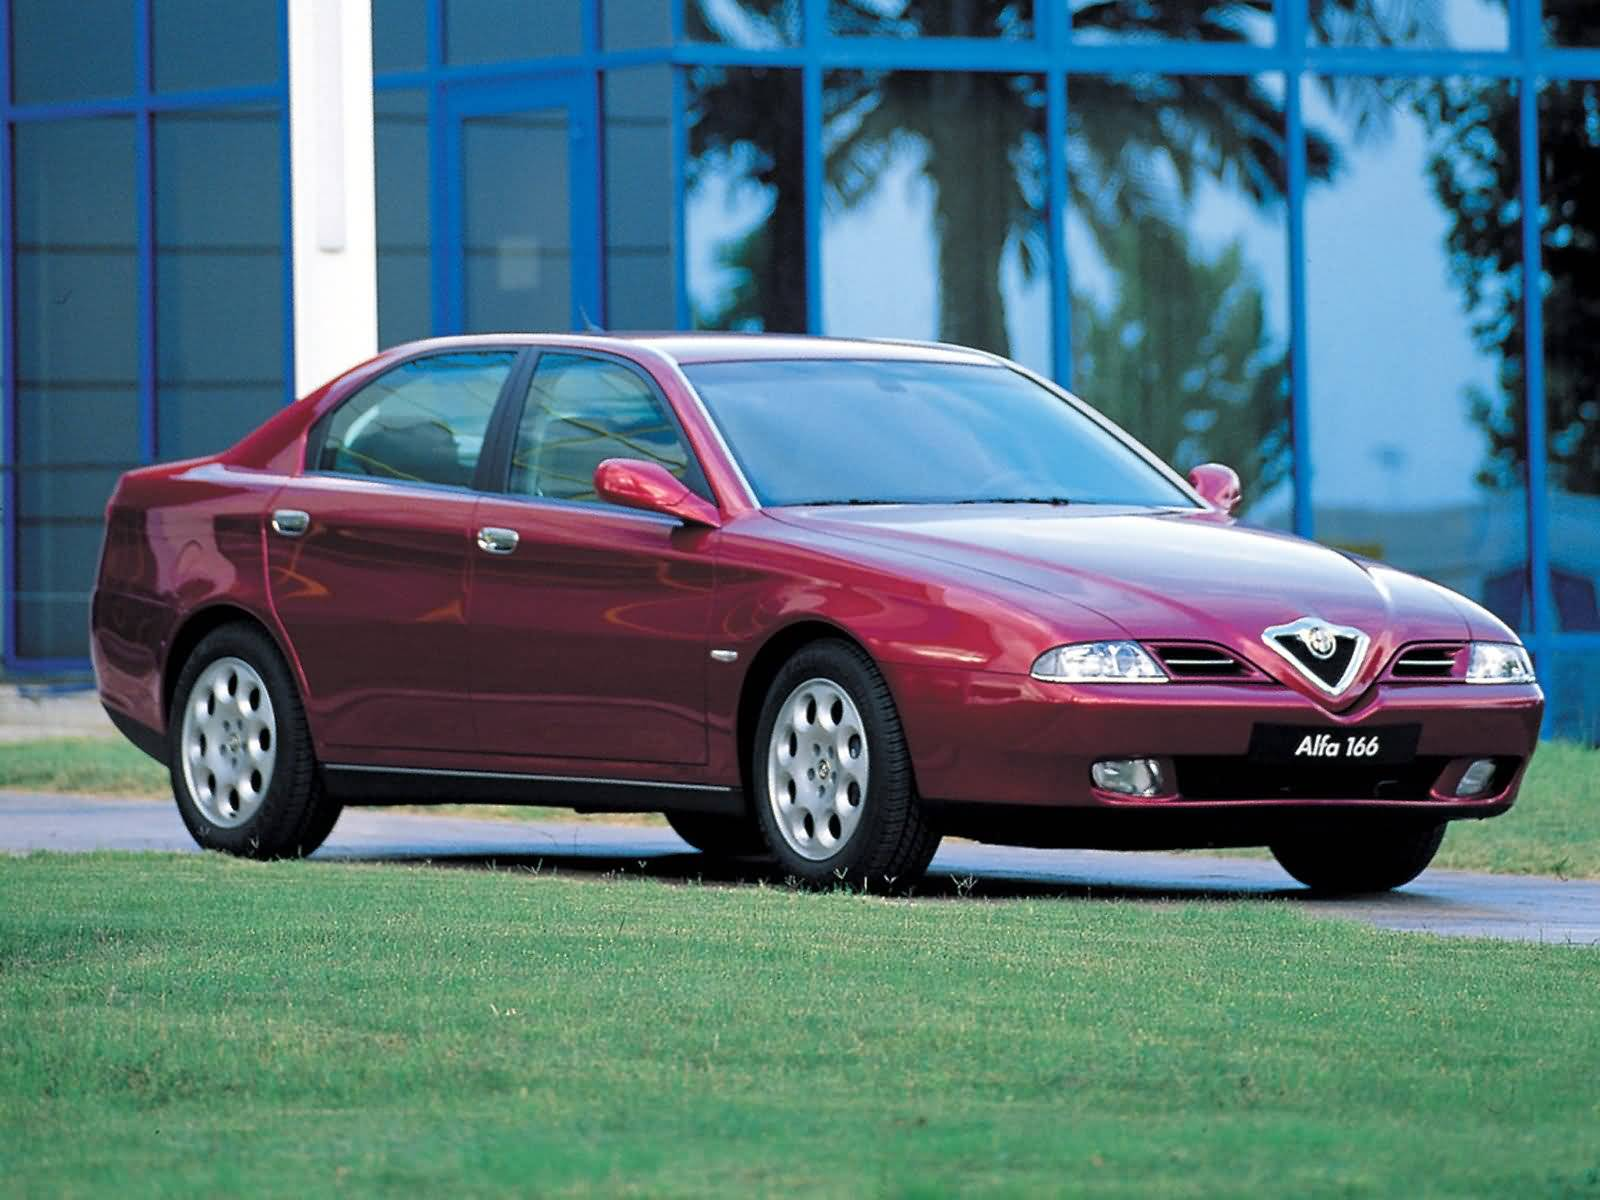 Beautiful red colour Alfa Romeo 166 Car